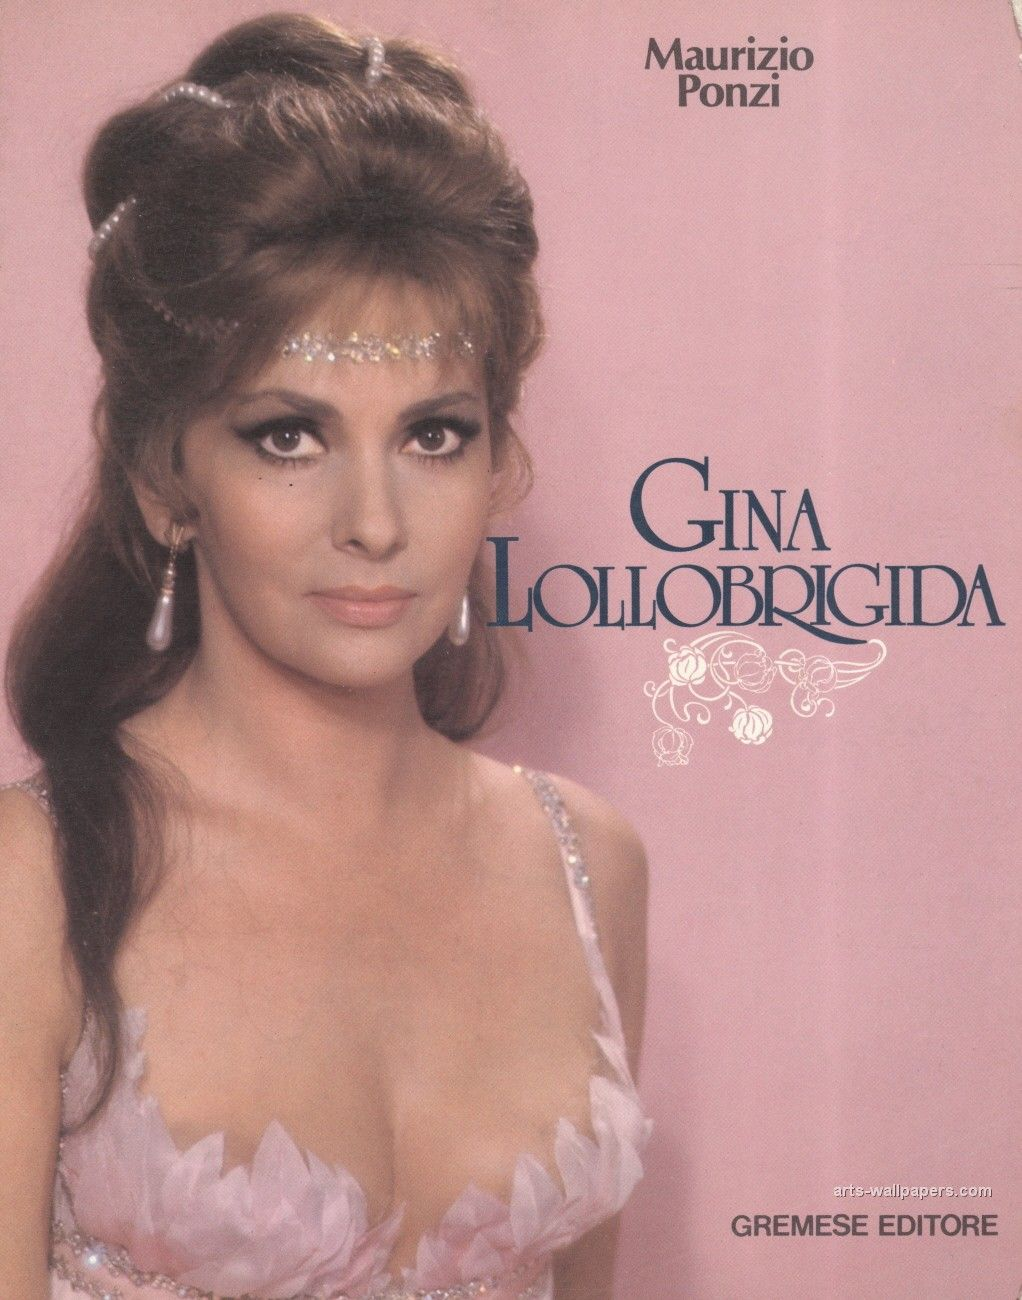 gina lollobrigida photos | Gina Lollobrigida Photos | italian ...